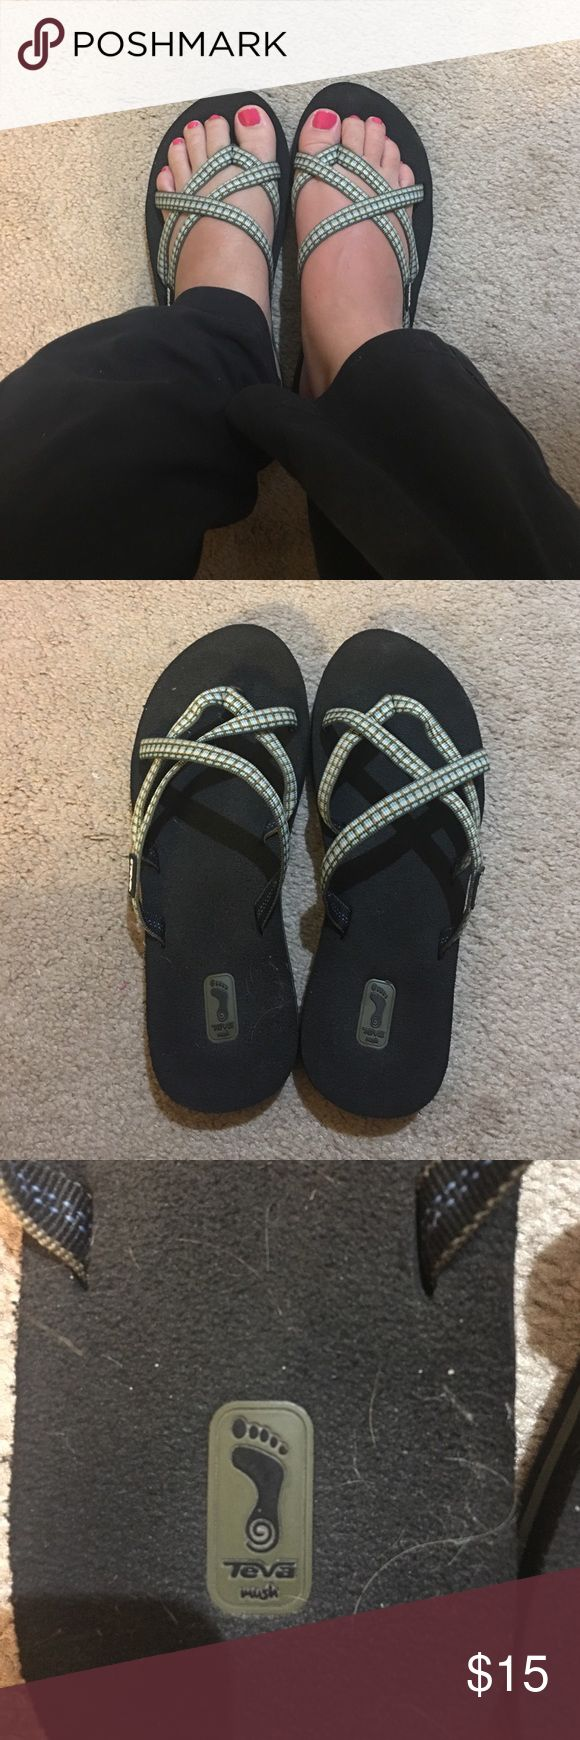 Teva flip flops Blue Teva flip flops. Hardly worn. Very comfortable. Teva Shoes Sandals